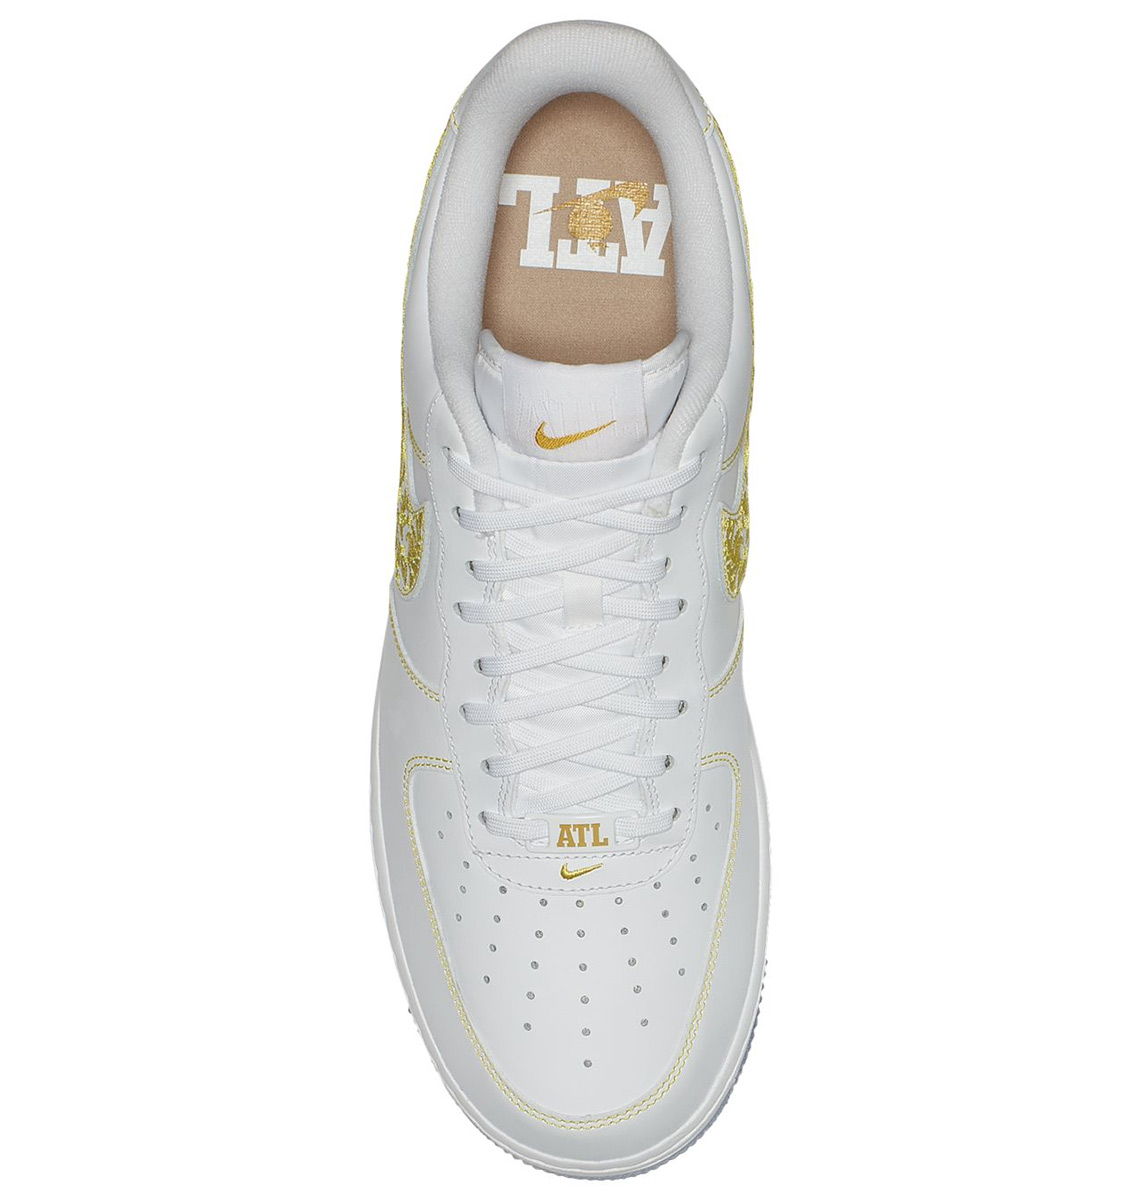 quality design 12f04 674a9 Nike Air Force 1 Low Atlanta First Look Release Date   SneakerNews.com